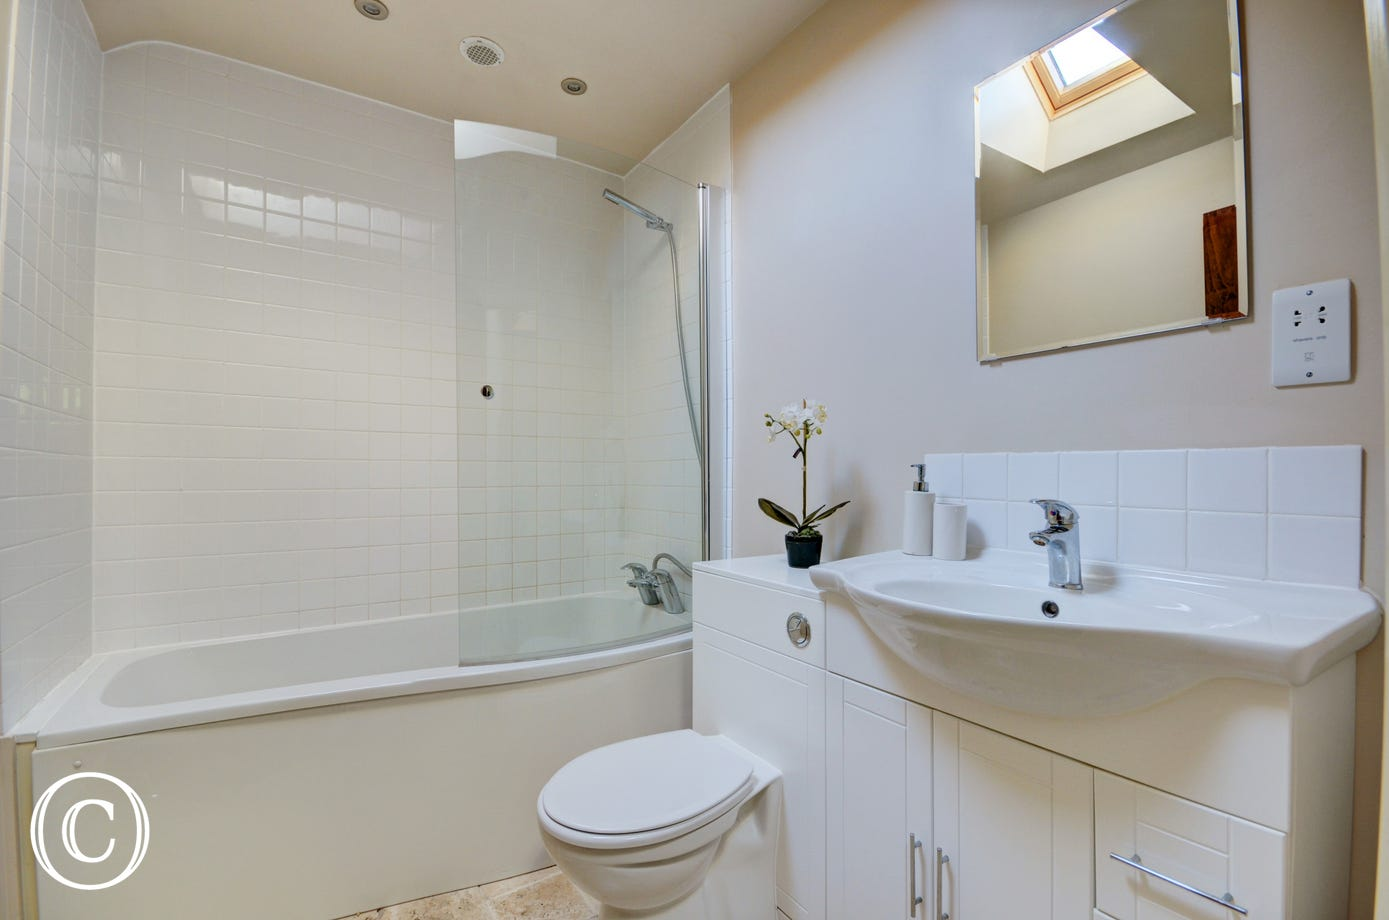 The ensuite off of bedroom one has a curved bath with an over bath shower, washbasin and wc